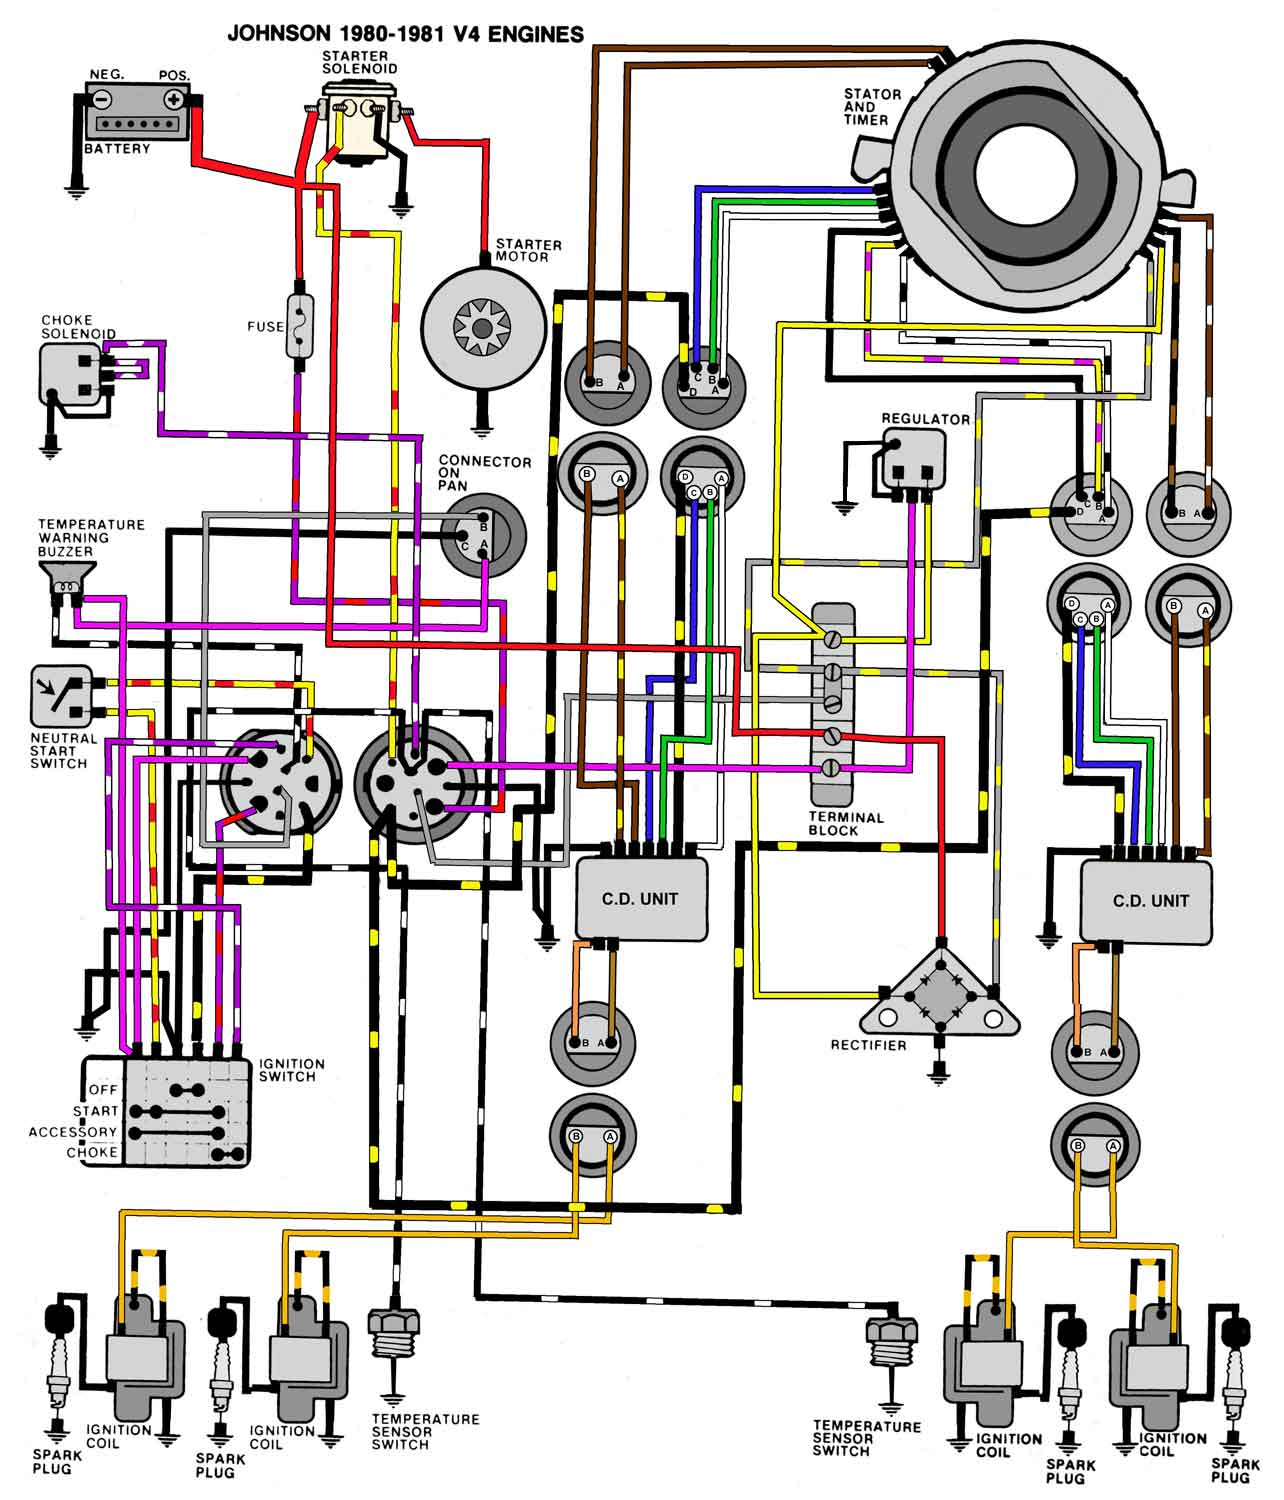 evinrude johnson outboard wiring diagrams mastertech marine rh maxrules com 2000 Johnson 150 Outboard Johnson Outboard Motor Year